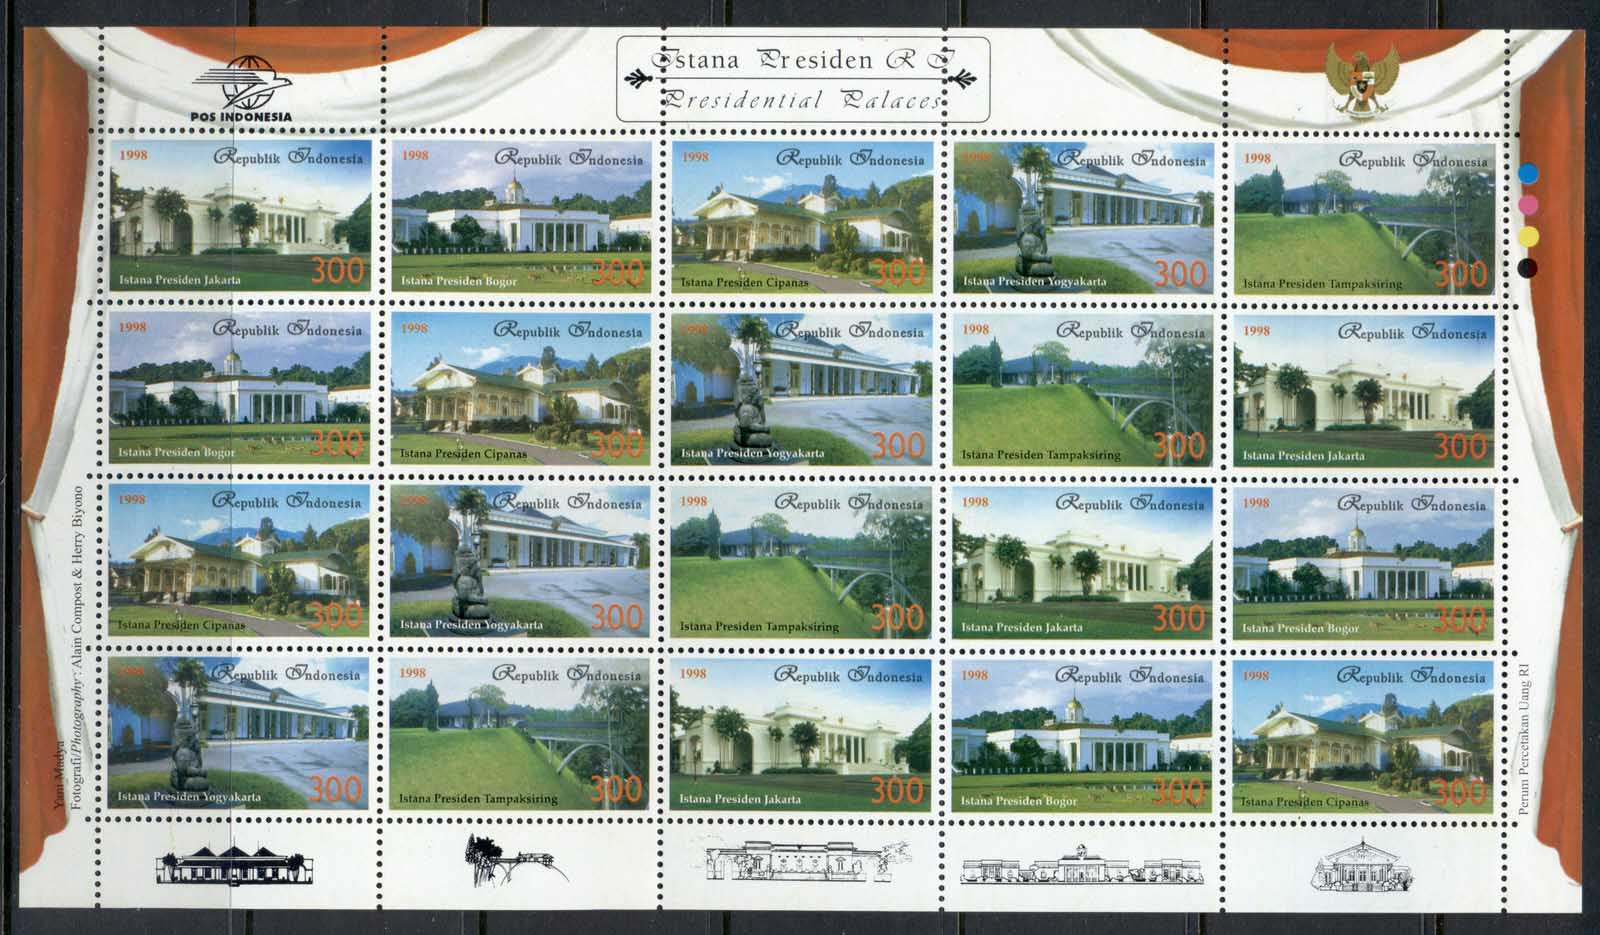 Indonesia 1998 Presidential Palaces sheetlet MUH